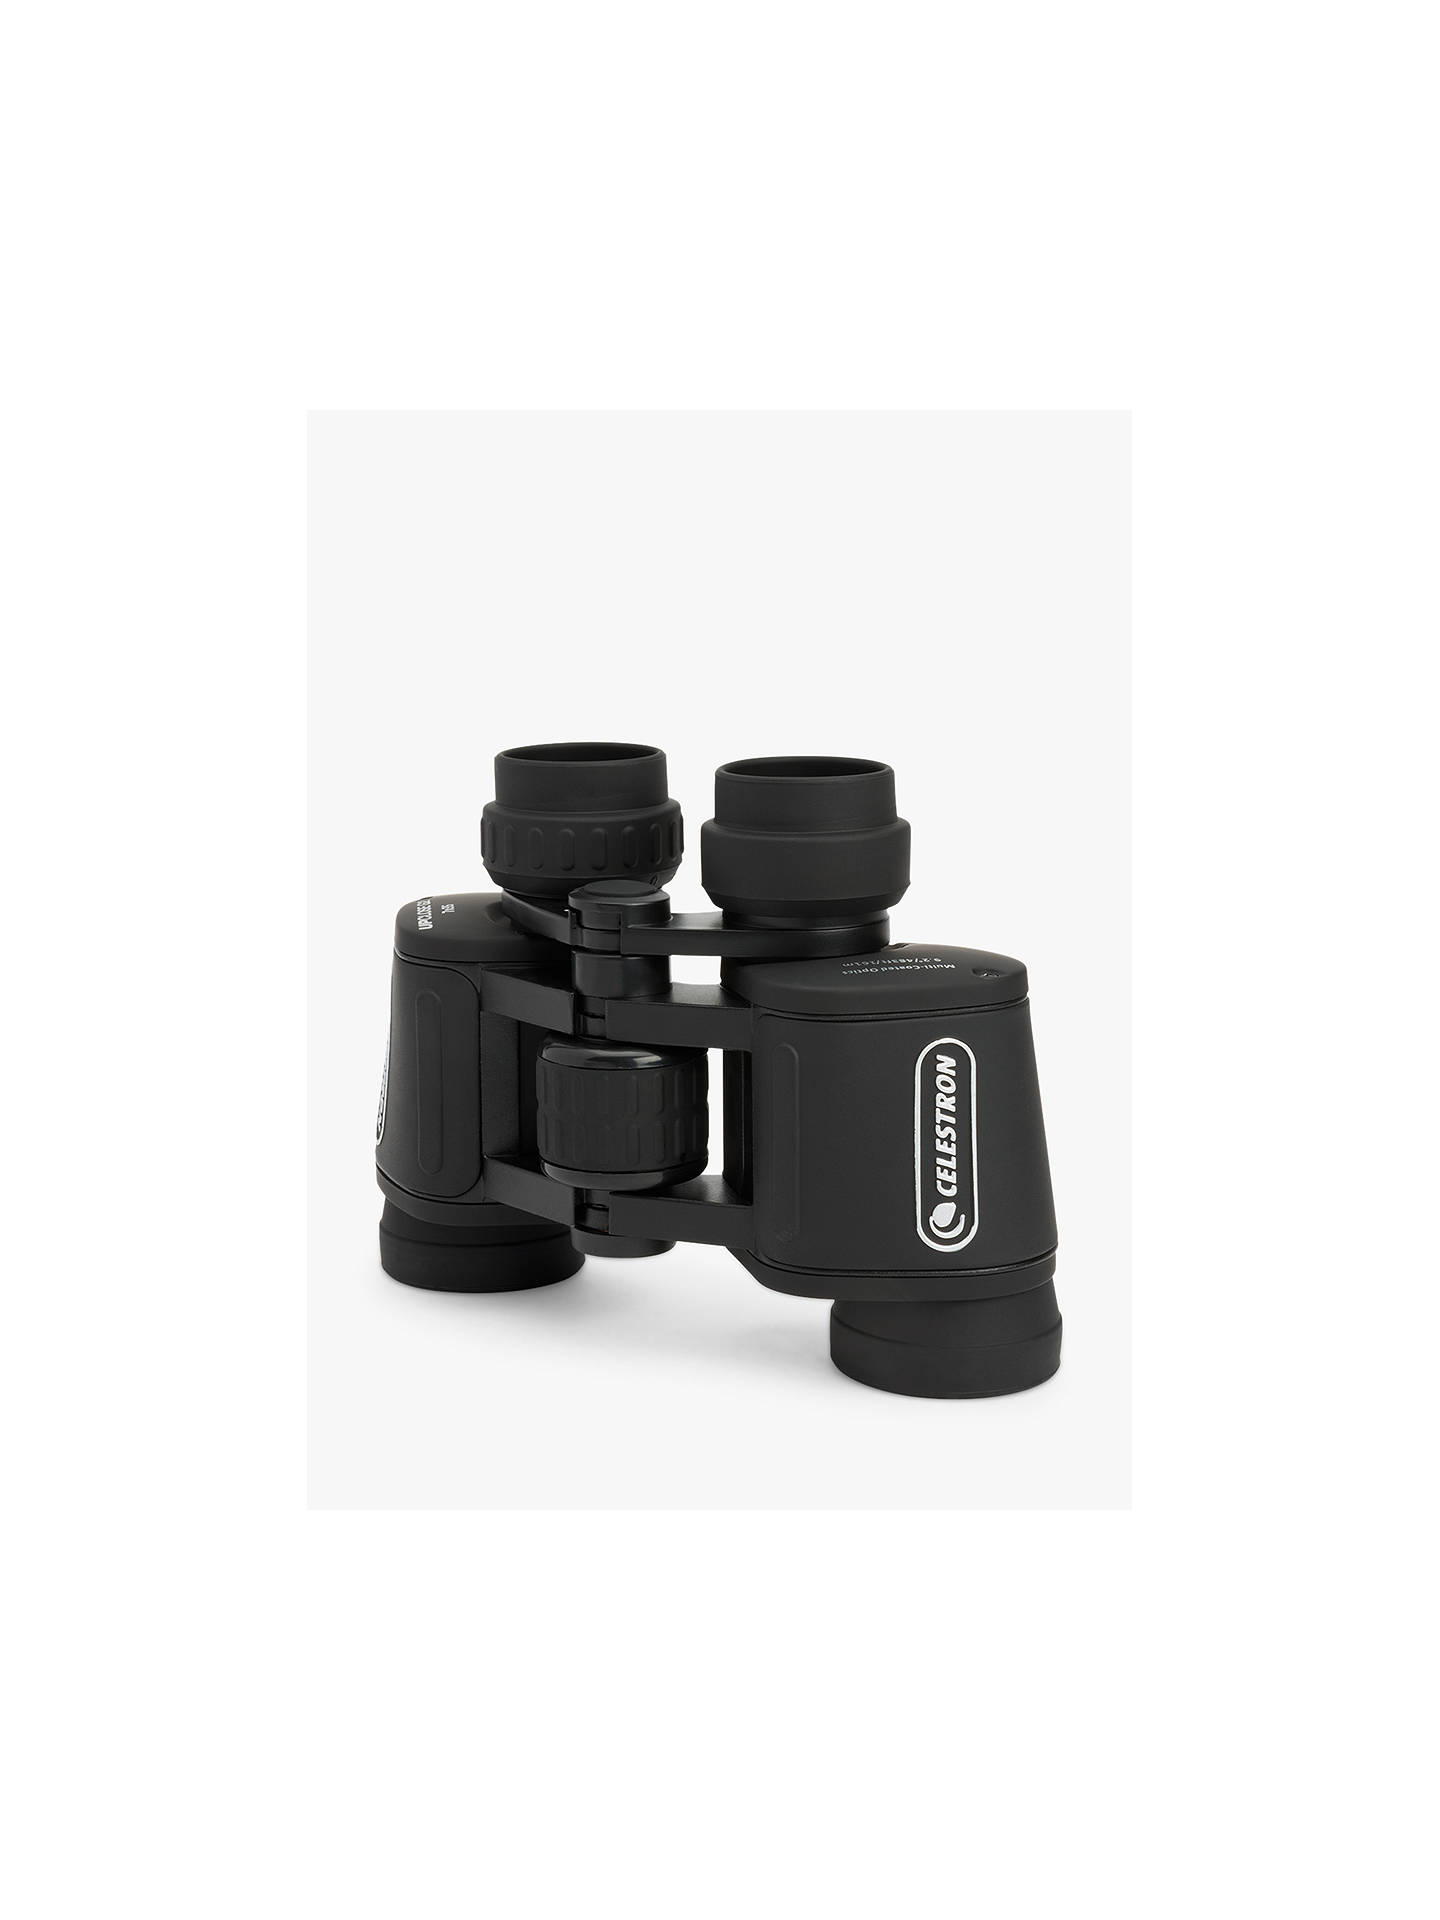 Buy Celestron Upclose G2 Porro Binoculars, 7 x 35, with Birdwatching Guide Online at johnlewis.com